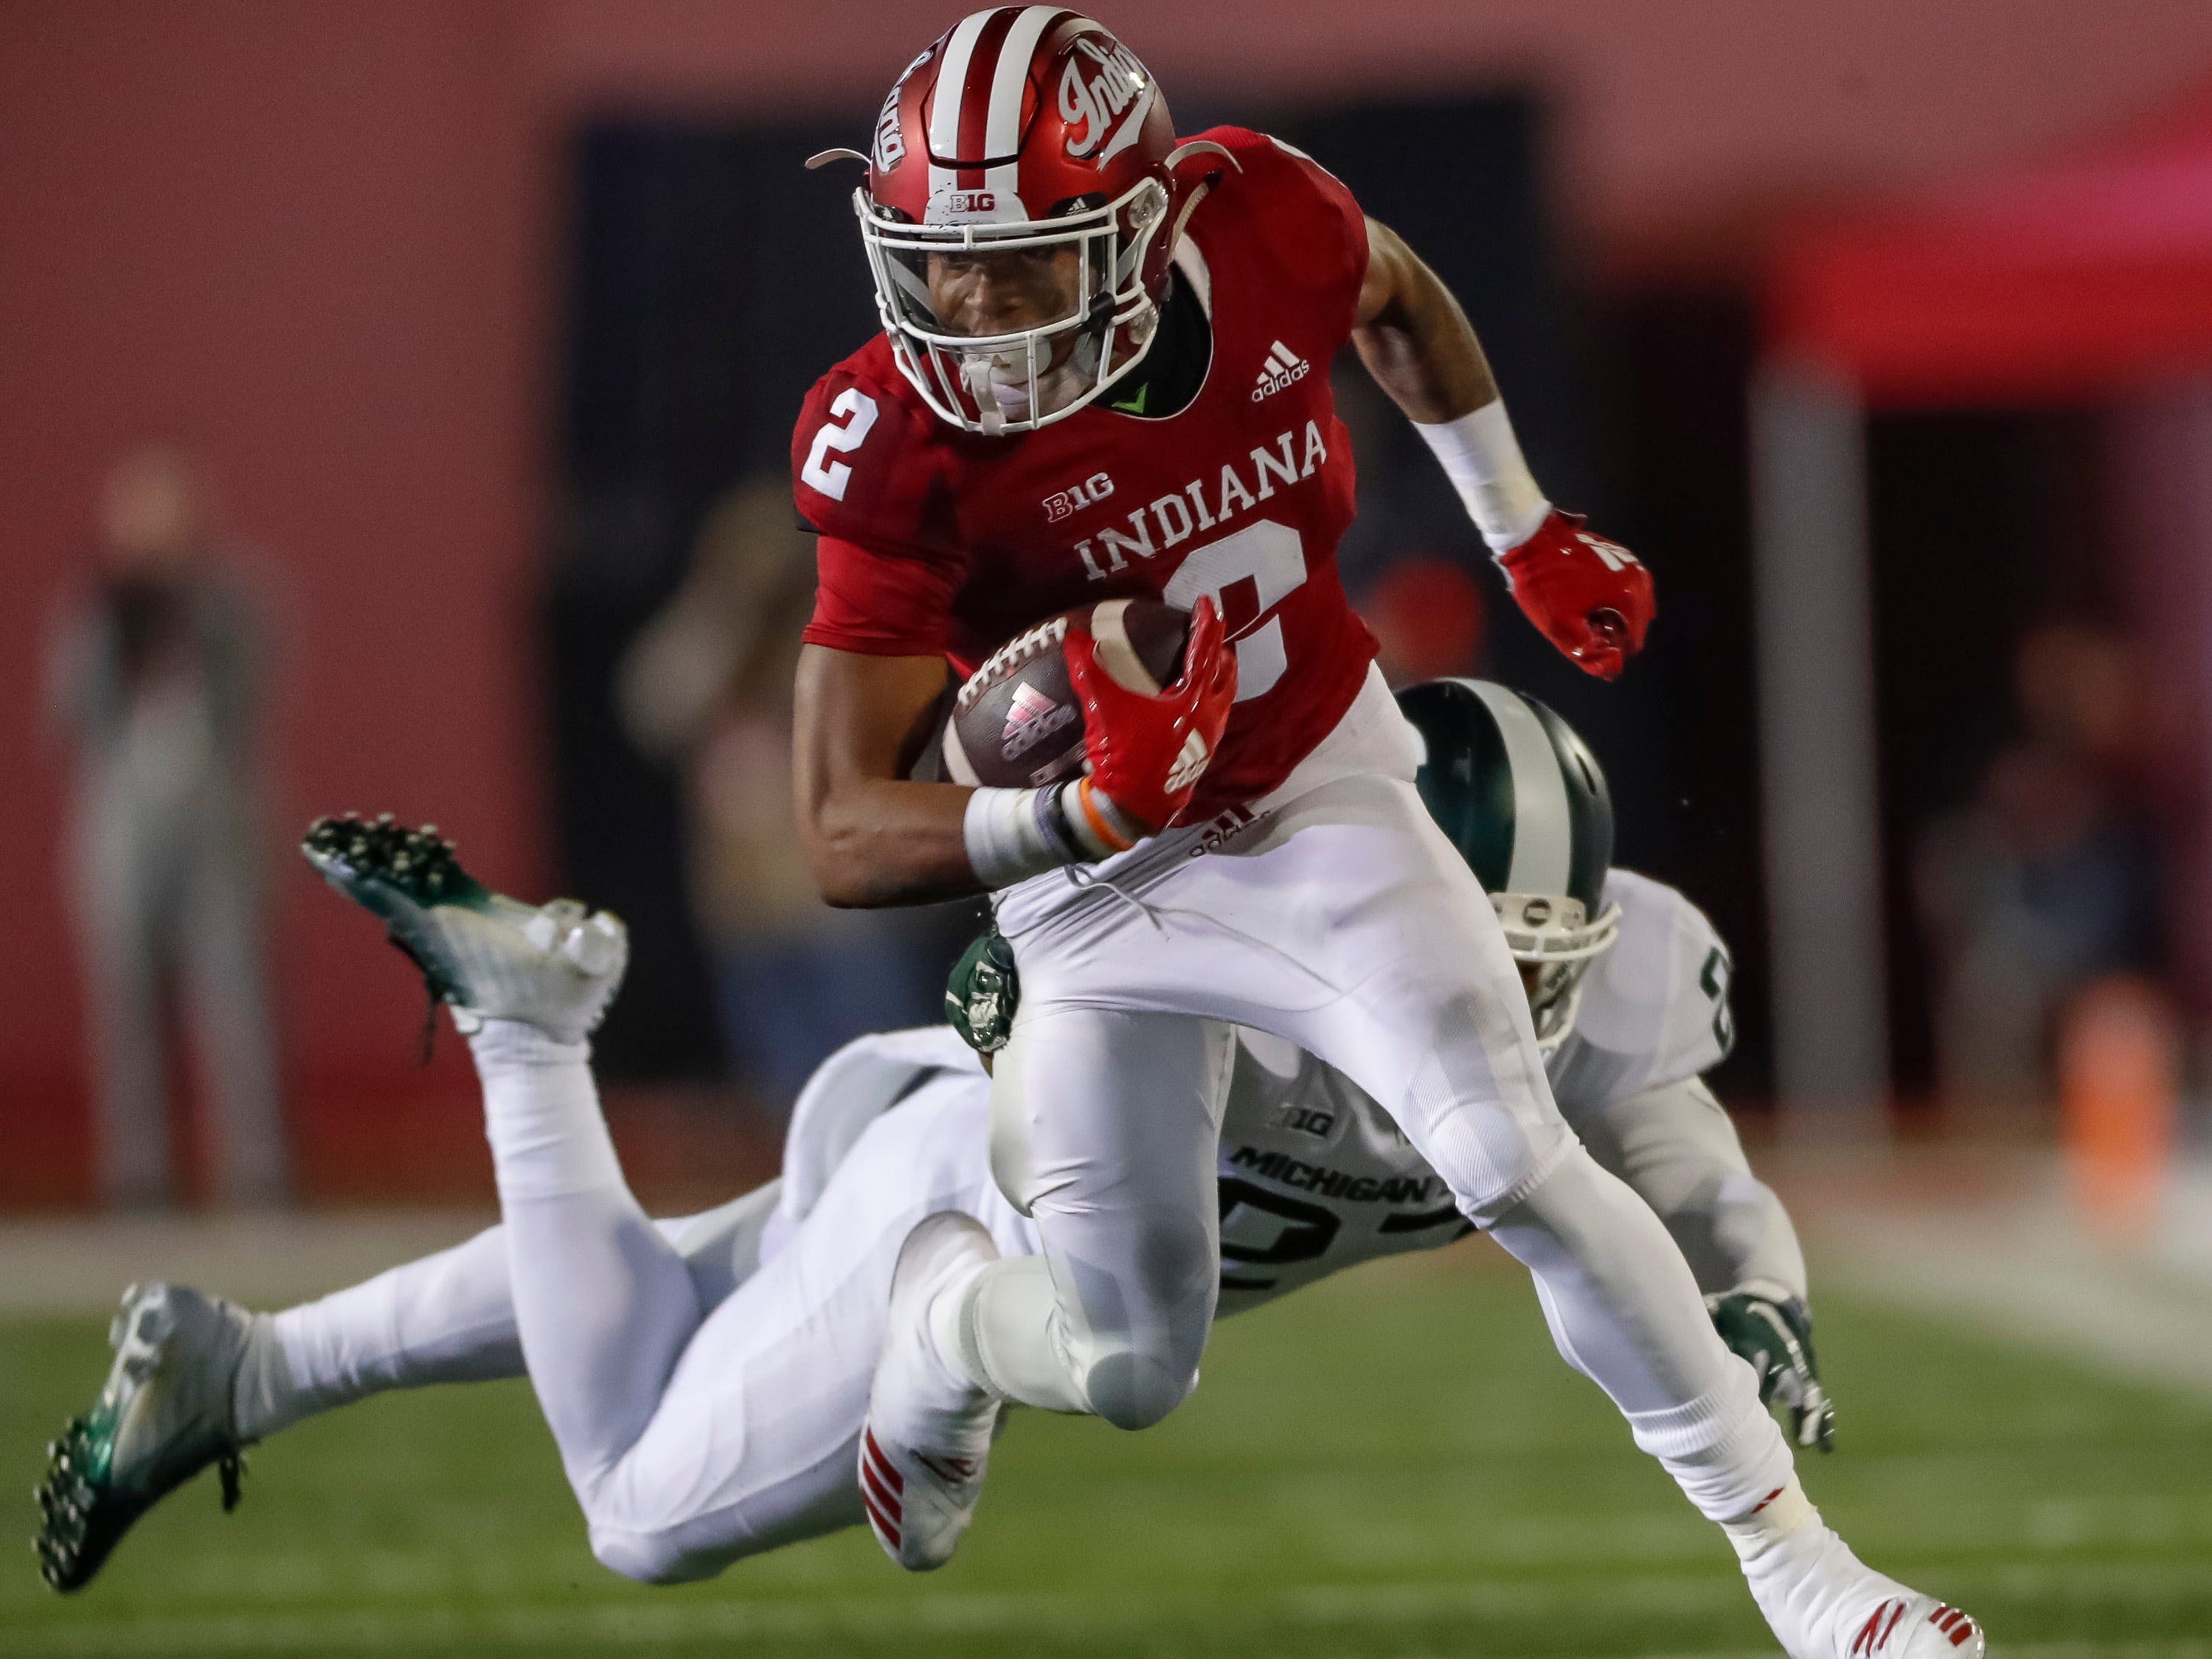 Reese Taylor #2 of the Indiana Hoosiers runs the ball as Khari Willis #27 of the Michigan State Spartans tries to make the stop from behind during the first half of action at Memorial Stadium on September 22, 2018 in Bloomington, Indiana.